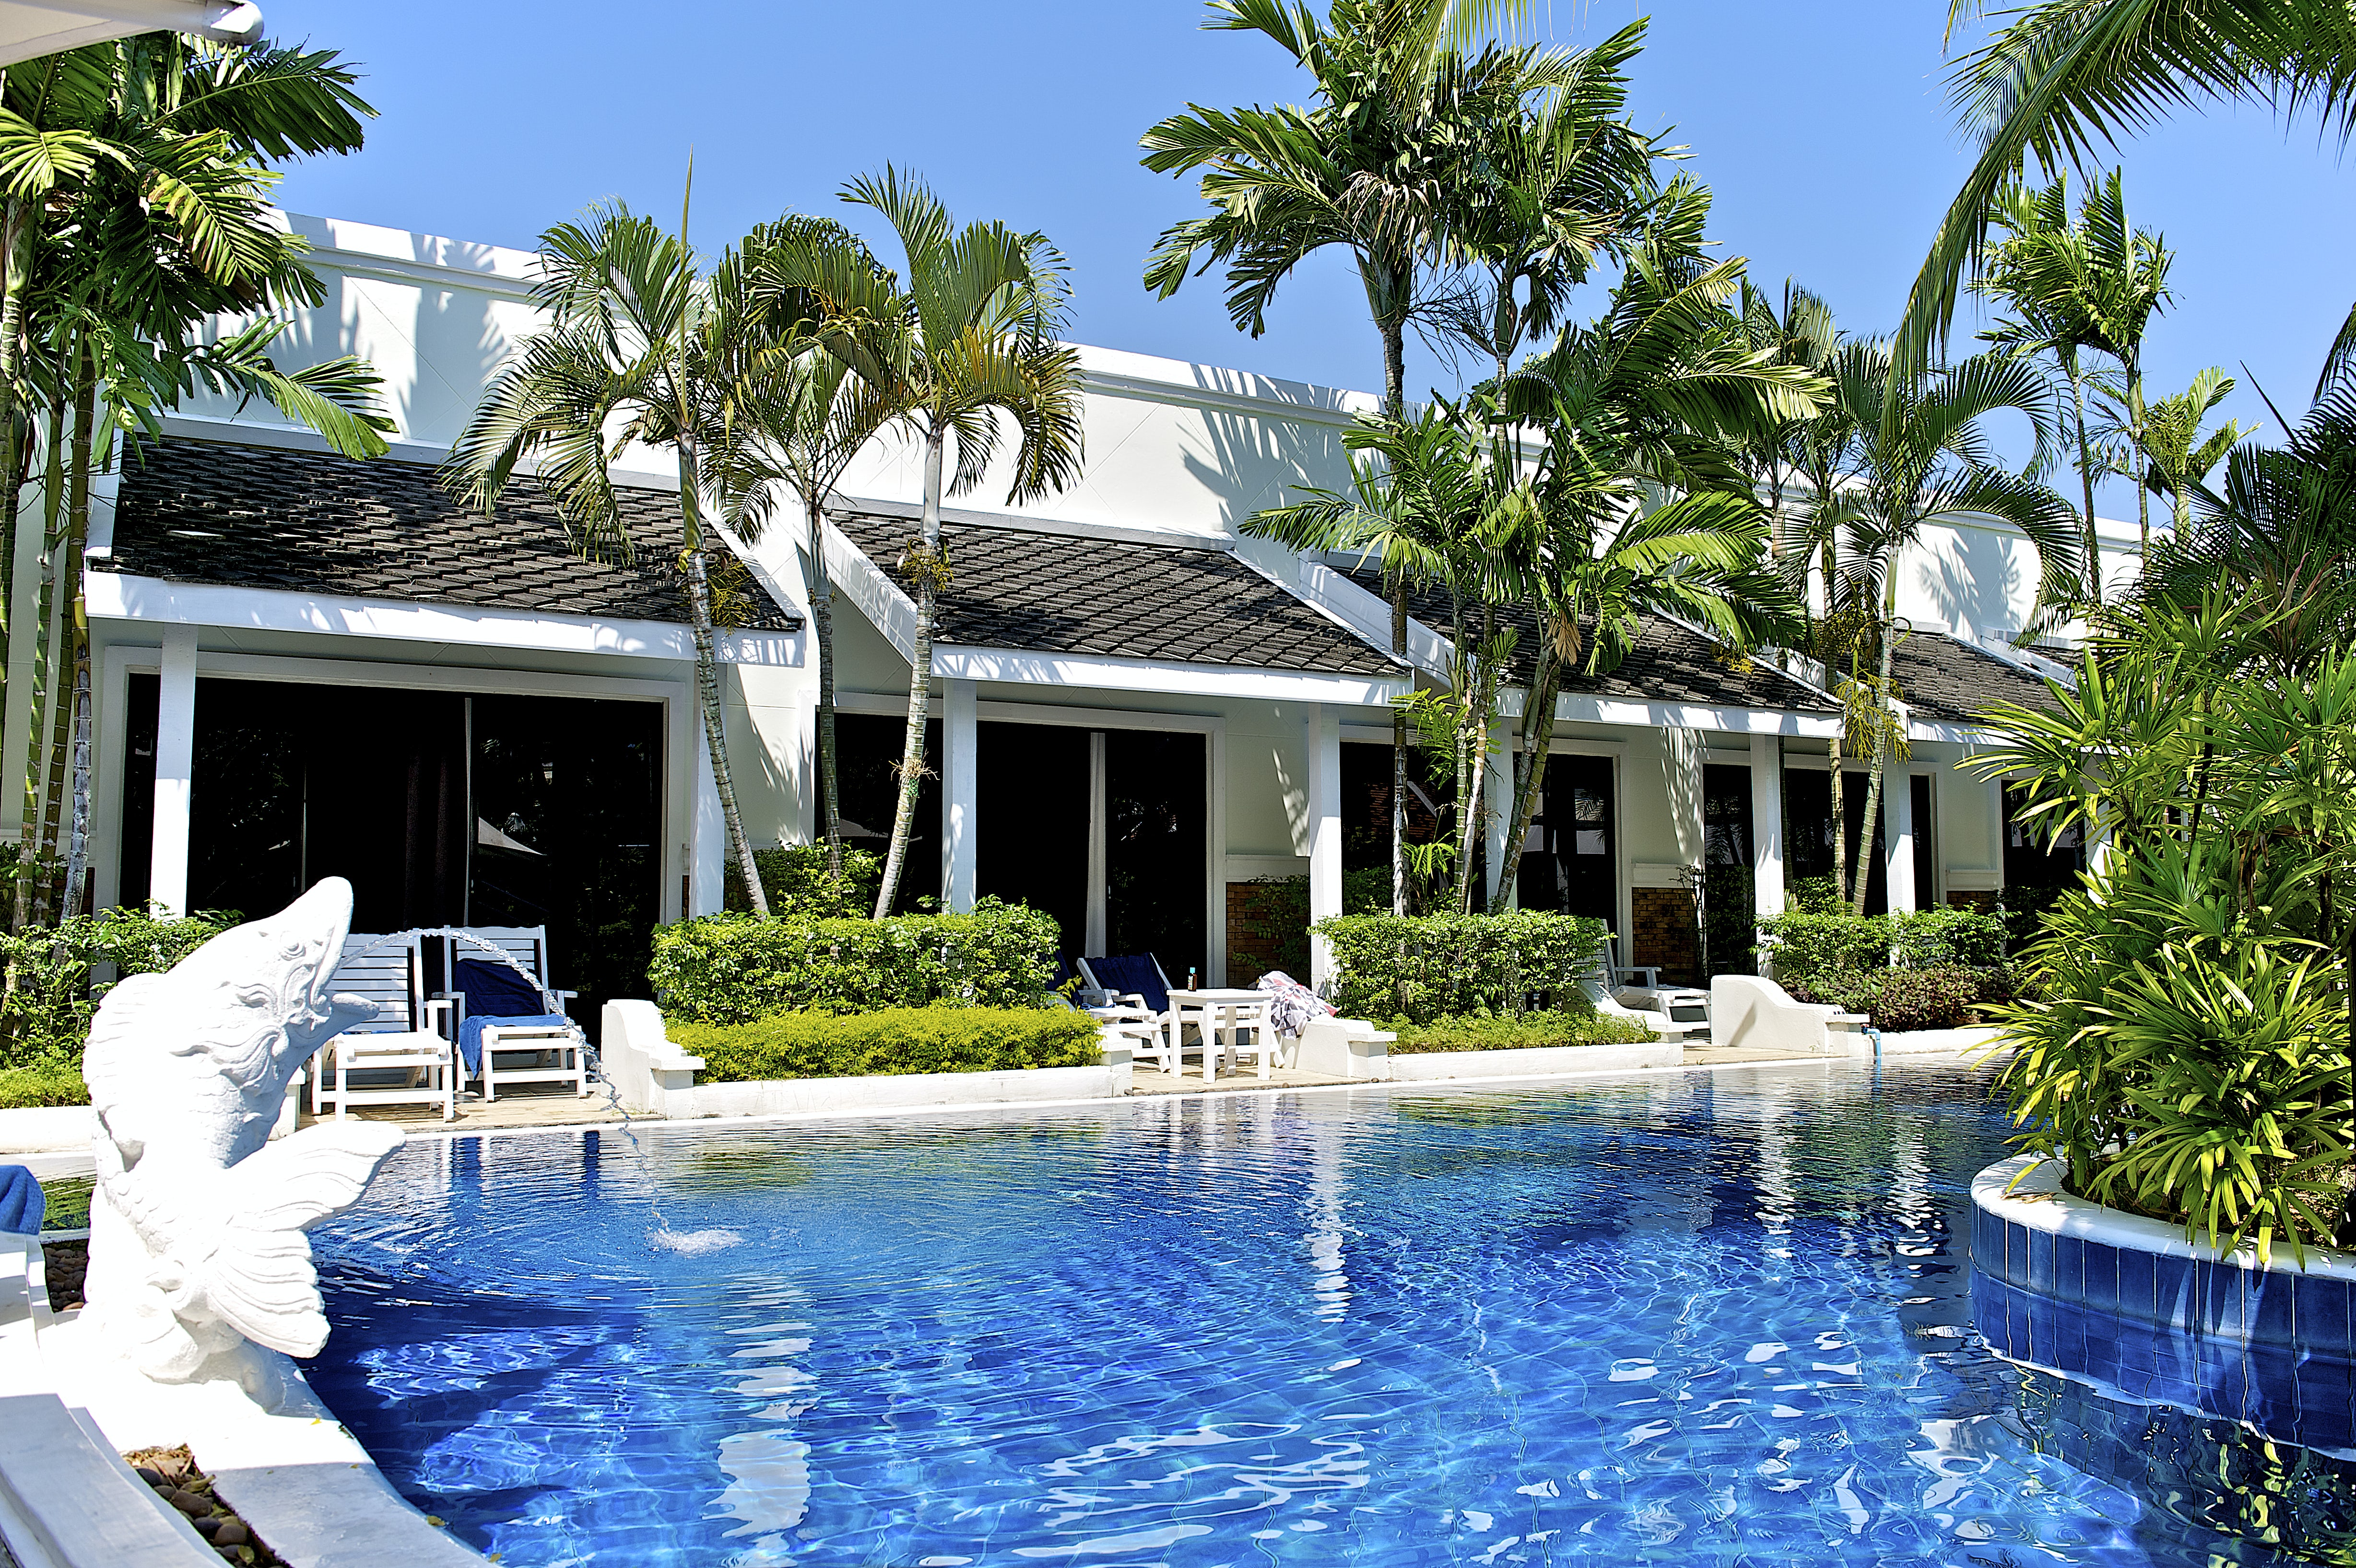 The Access Pool Resort & Spa